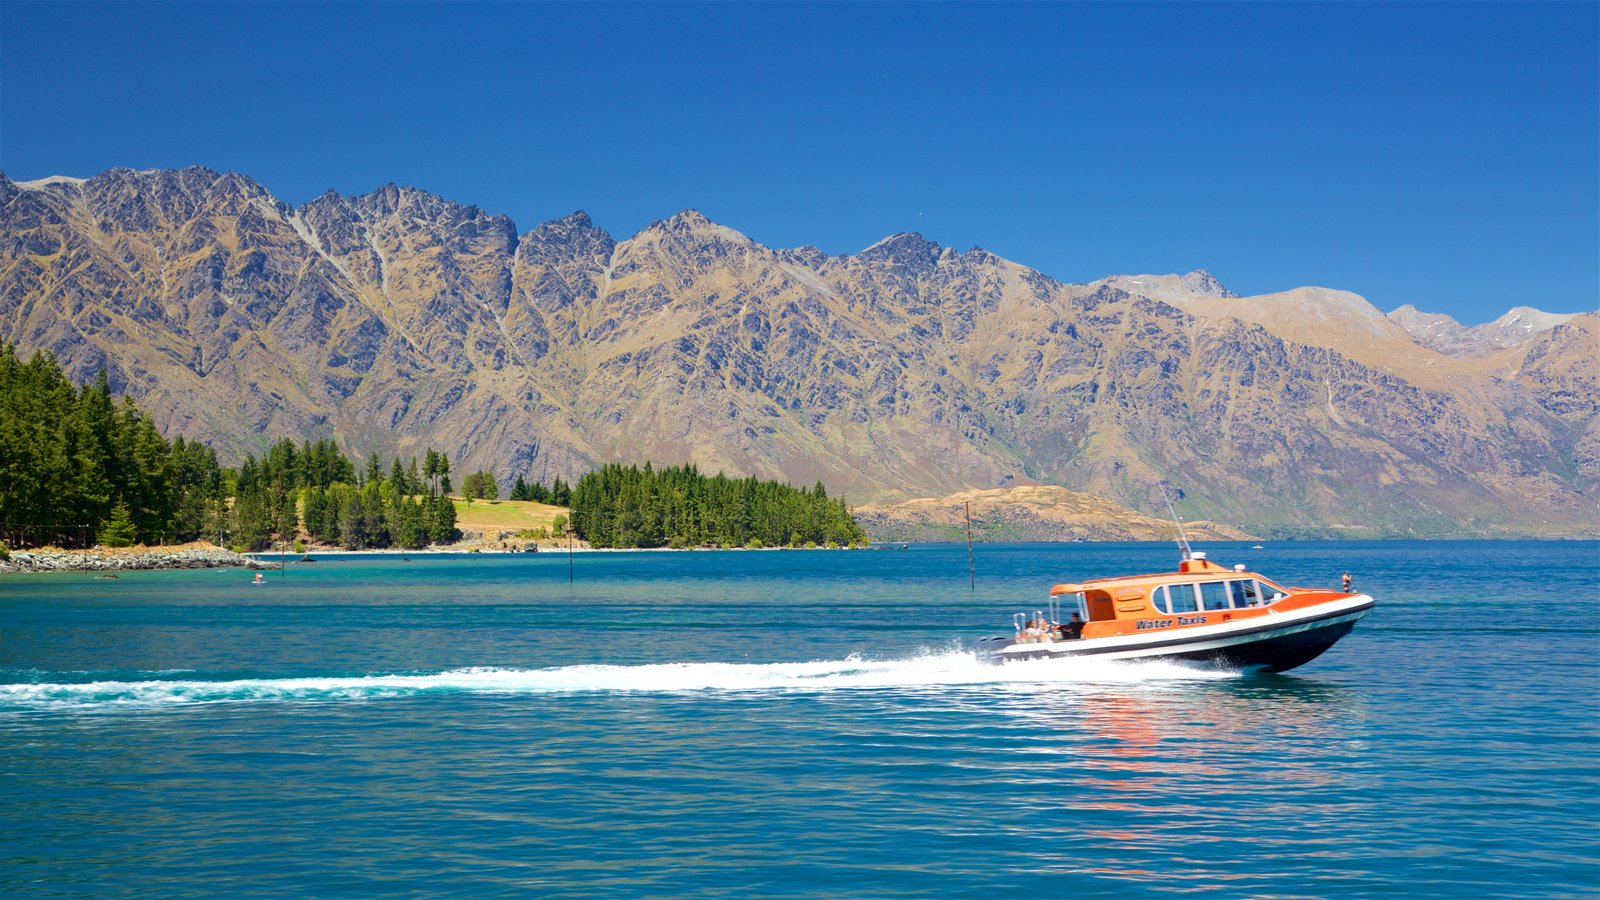 The Remarkables Ski Area which includes a lake or waterhole, boating and mountains